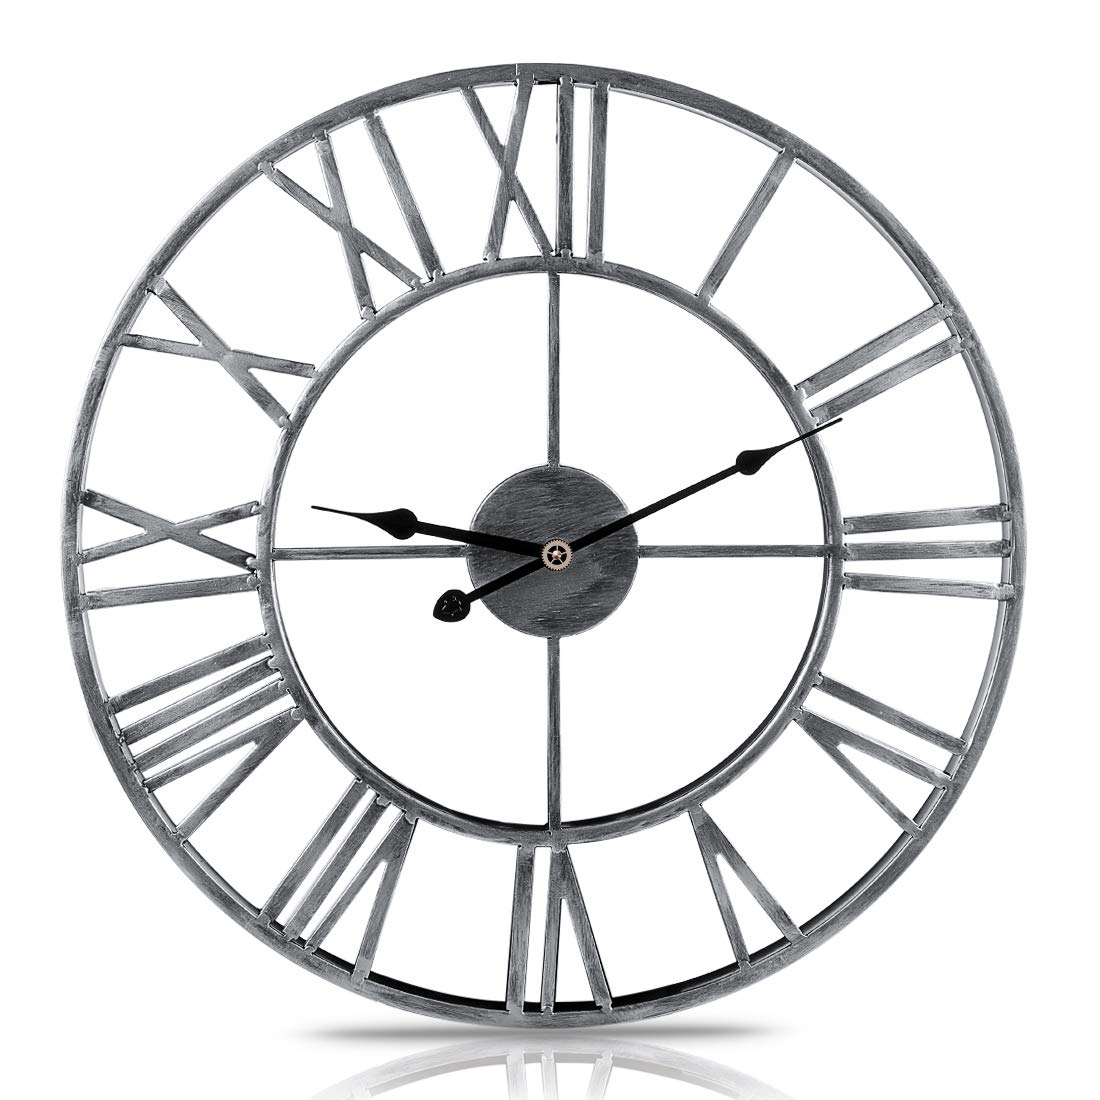 566559a7a03f XSHION Round Wall Clock, 20 Inch Metal Vintage Handmade Retro Roman  Numerals Iron Wall Clocks Large Decorative Wall Clocks for  Office/Kitchen/Bedroom/Living ...